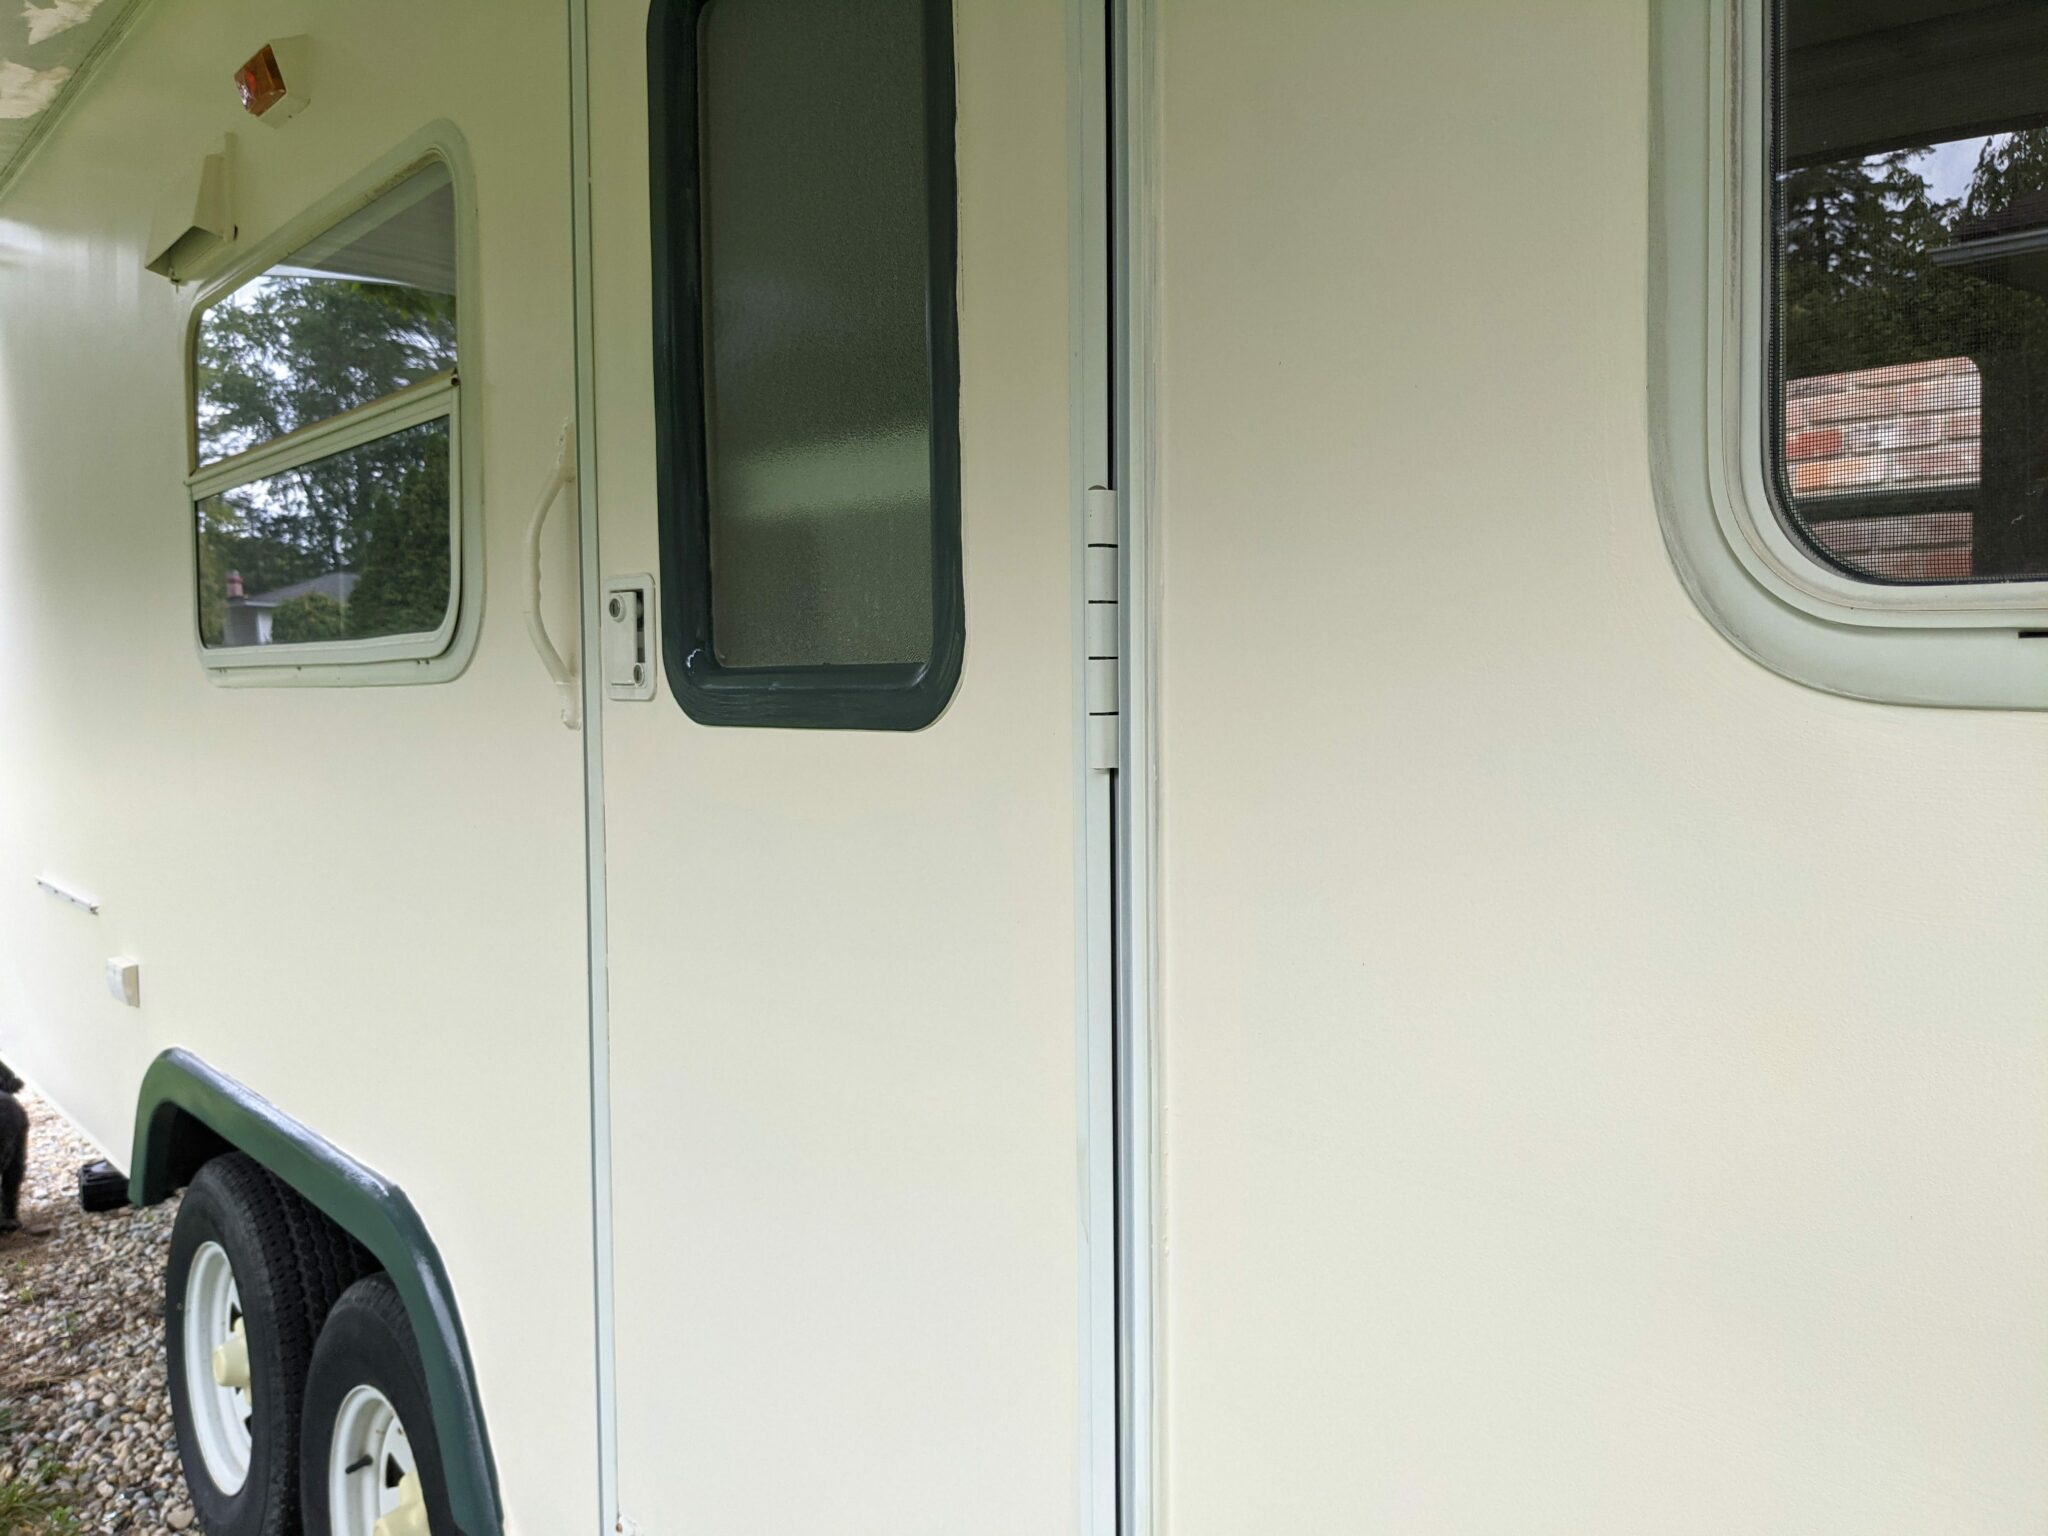 For Sale: Renovated 2003 Trail Cruiser Travel Trailer RV by R-Vision All Things with Purpose Sarah Lemp 7